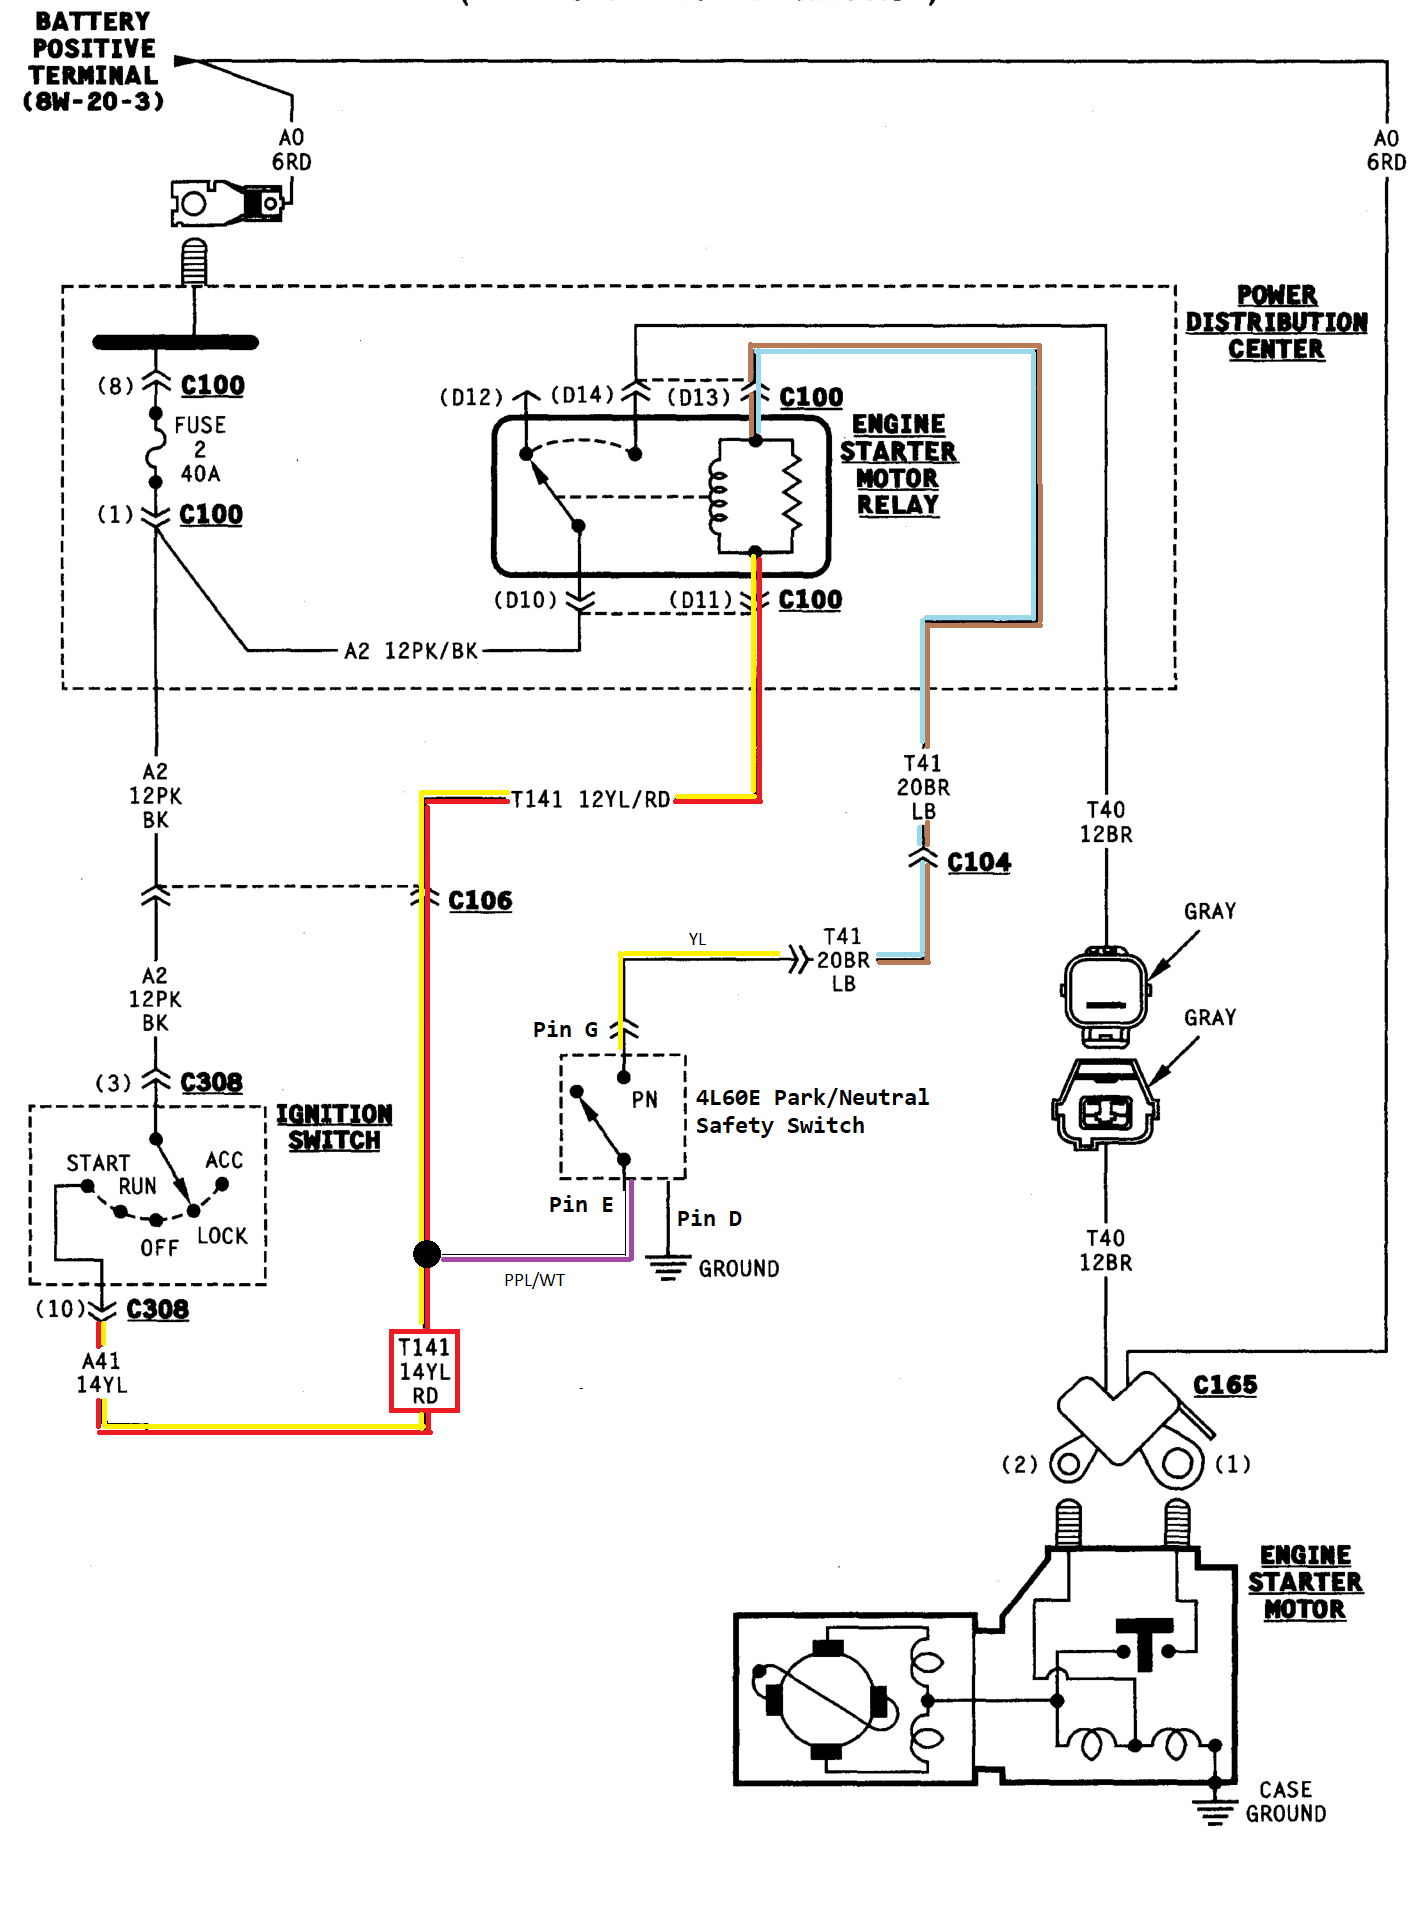 2003 Chevy Silverado Neutral Safety Switch Wiring Diagram